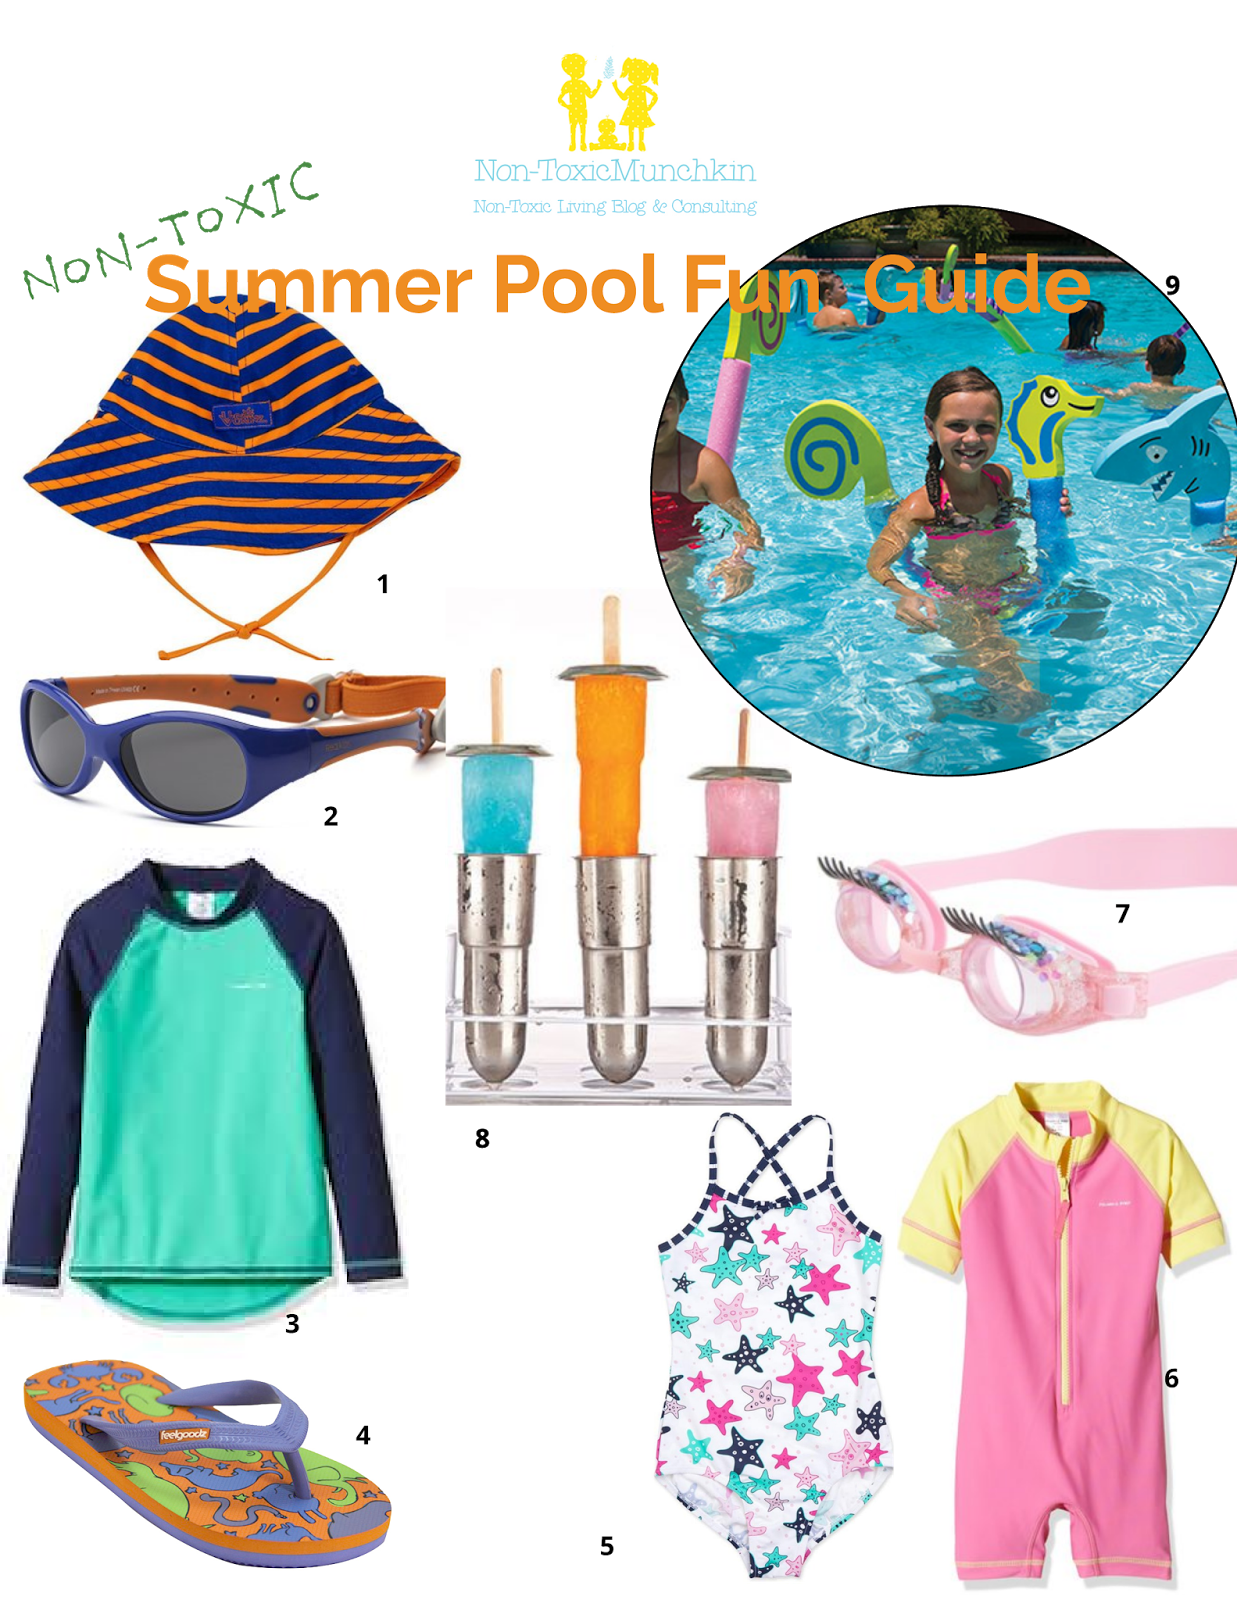 June sun poolside clipart clipart black and white stock Non-Toxic Munchkin: Non-Toxic Munchkin Summer Guide: Pool Party Days clipart black and white stock